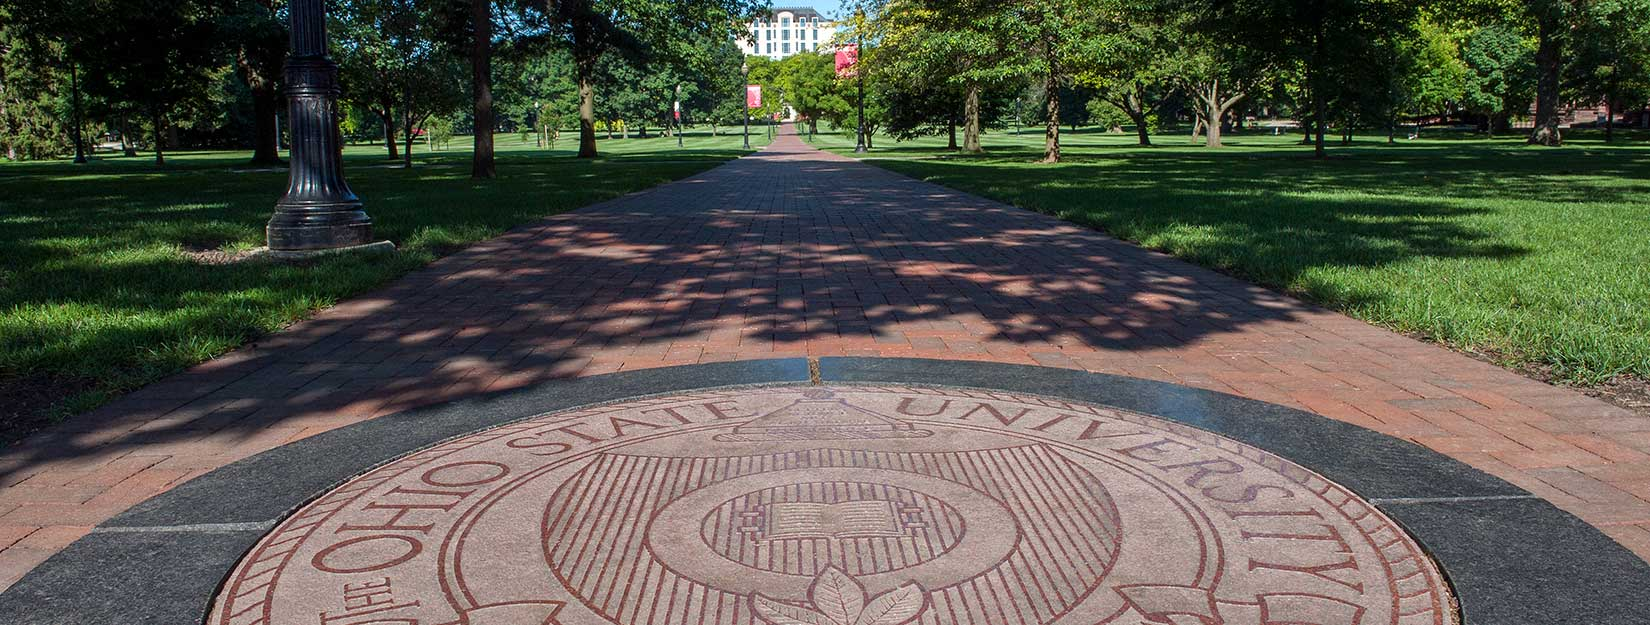 View down the path towards Thompson Library on the oval